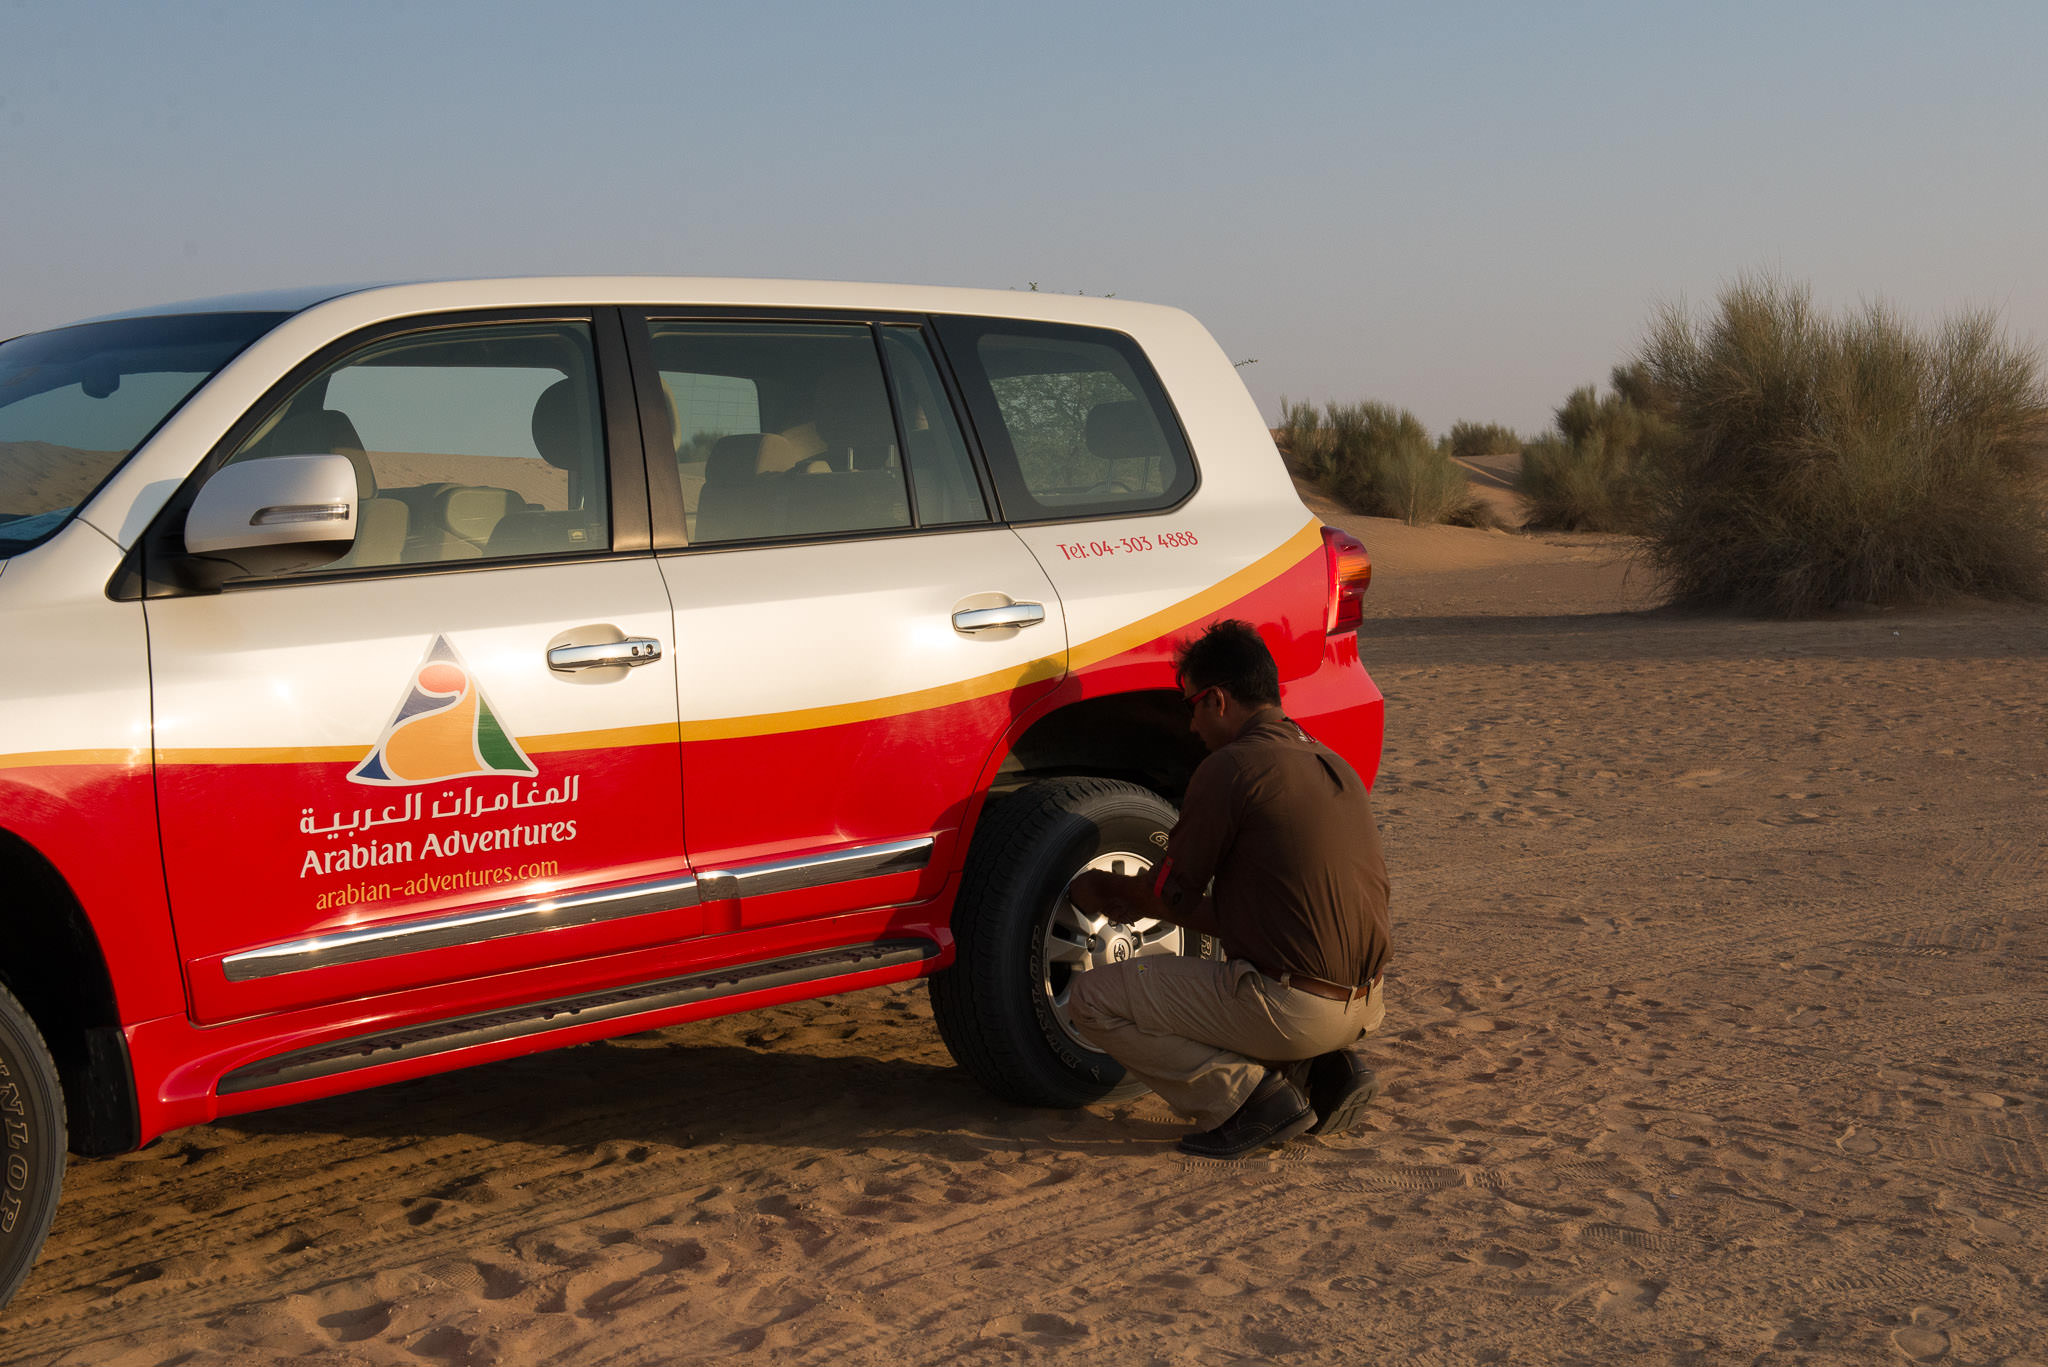 Releasing air from tyres before dune bashing